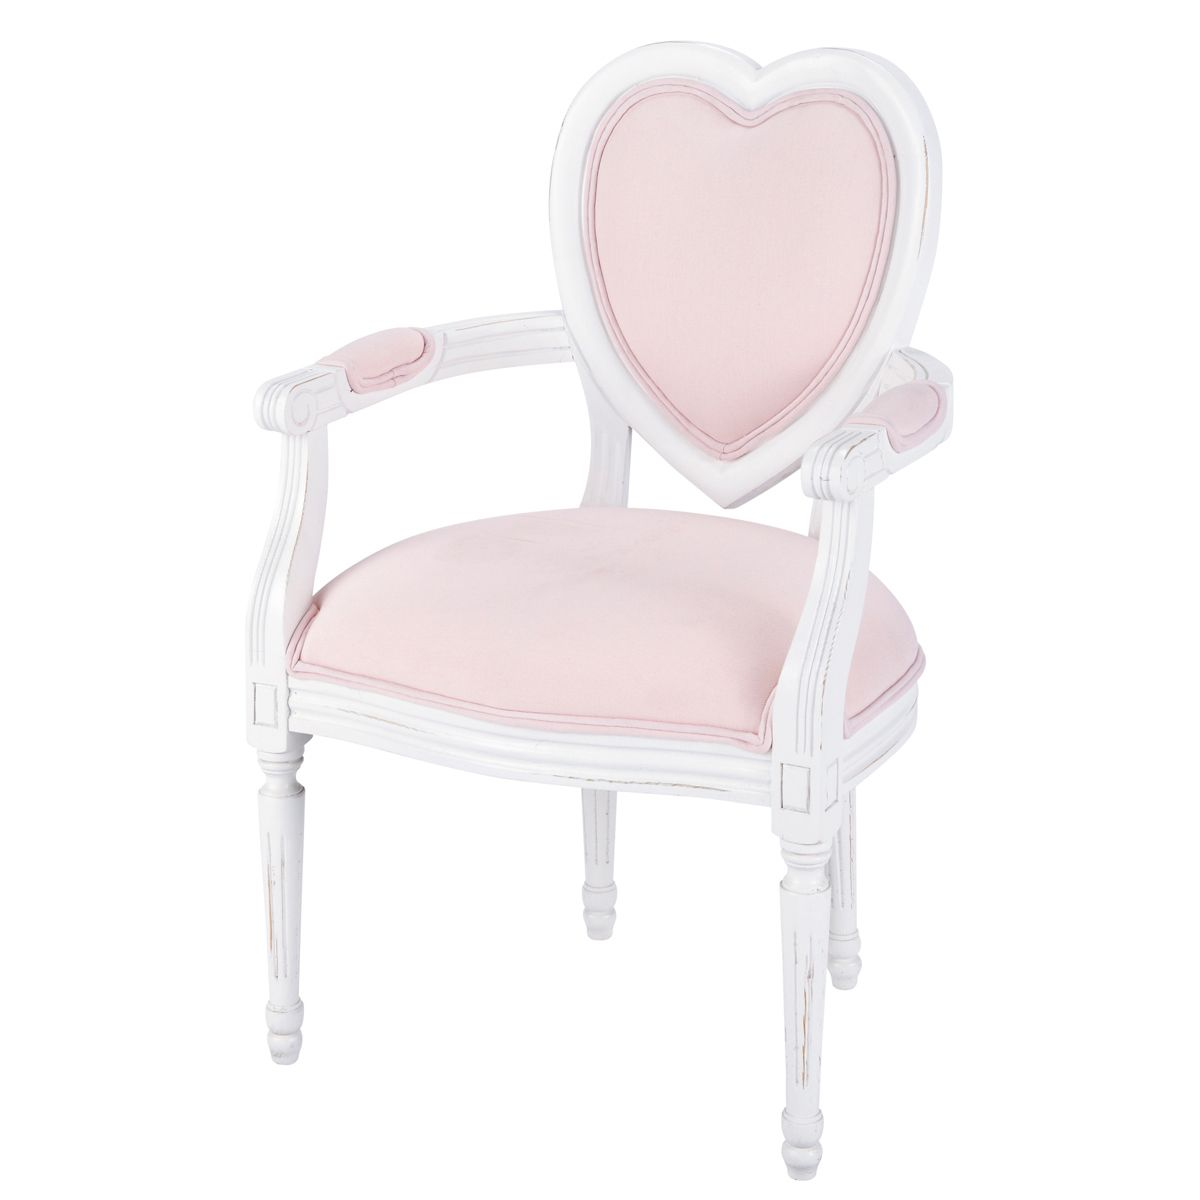 child s armchair pink coeur maisons du monde kiddo stuff pinterest armchairs room and. Black Bedroom Furniture Sets. Home Design Ideas